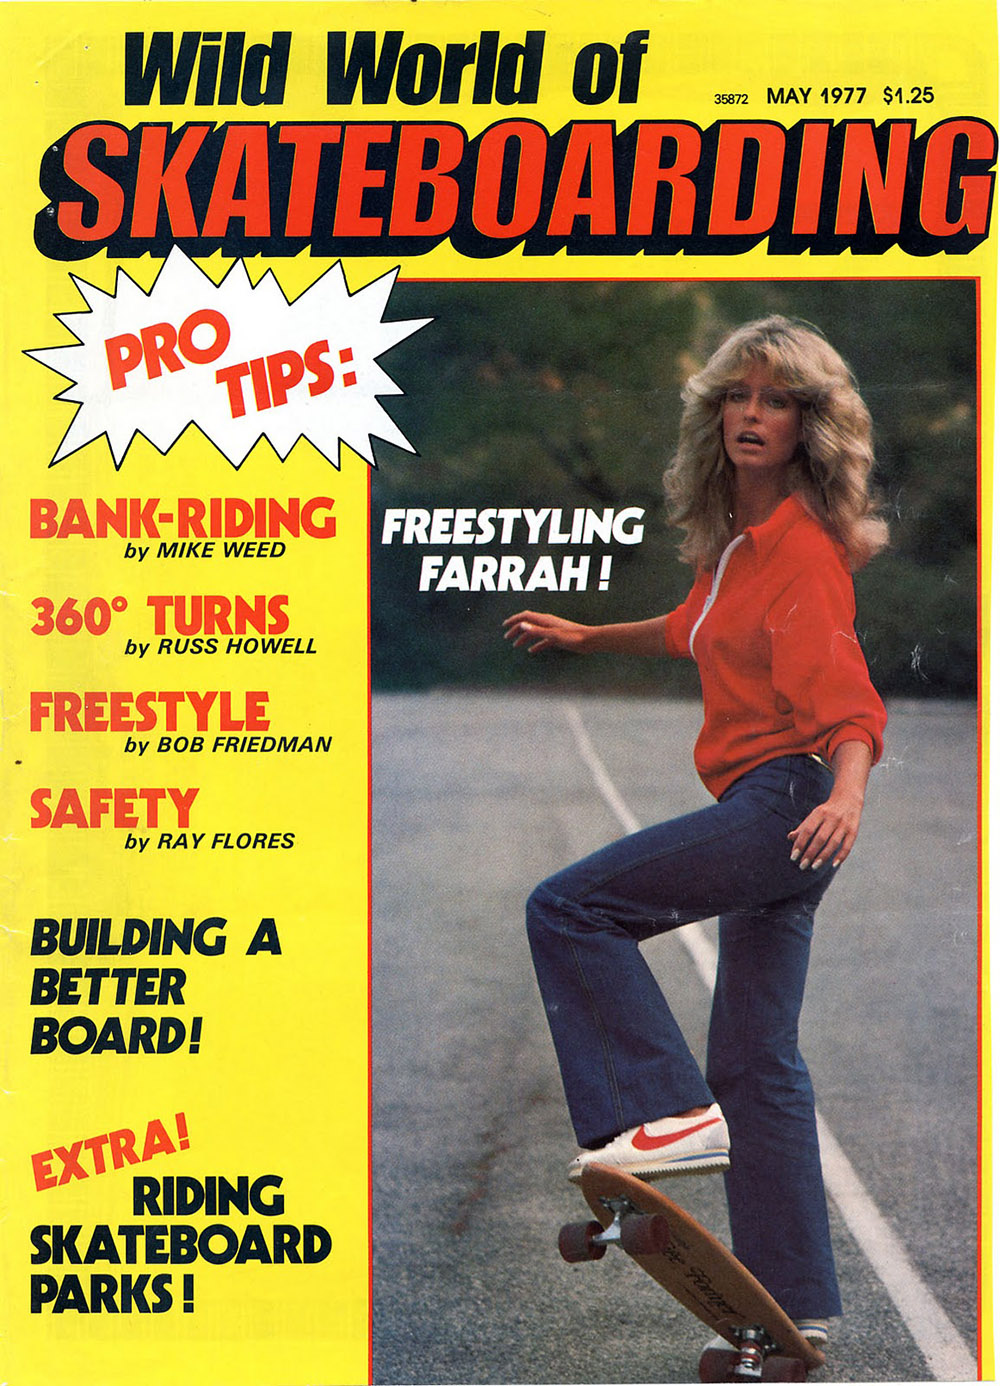 Farrah Everywhere The Countless Farrah Fawcett Magazine Covers Of 1976 To 1980 Flashbak